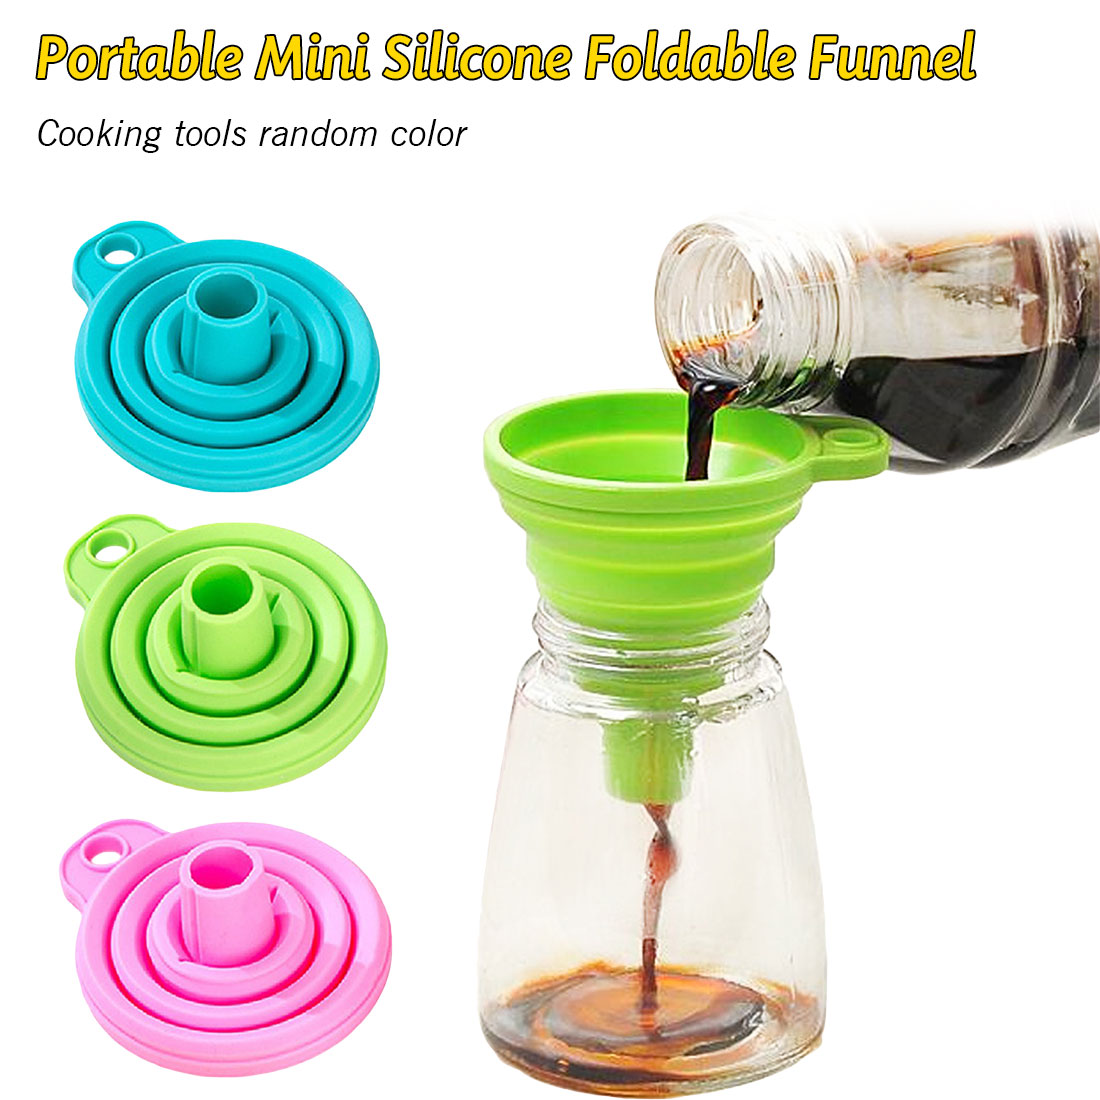 Collapsible Style Funnel Hopper Protable Mini <font><b>Silicone</b></font> Gel Foldable <font><b>Kitchen</b></font> Cooking <font><b>Tools</b></font> Accessories Gadgets image